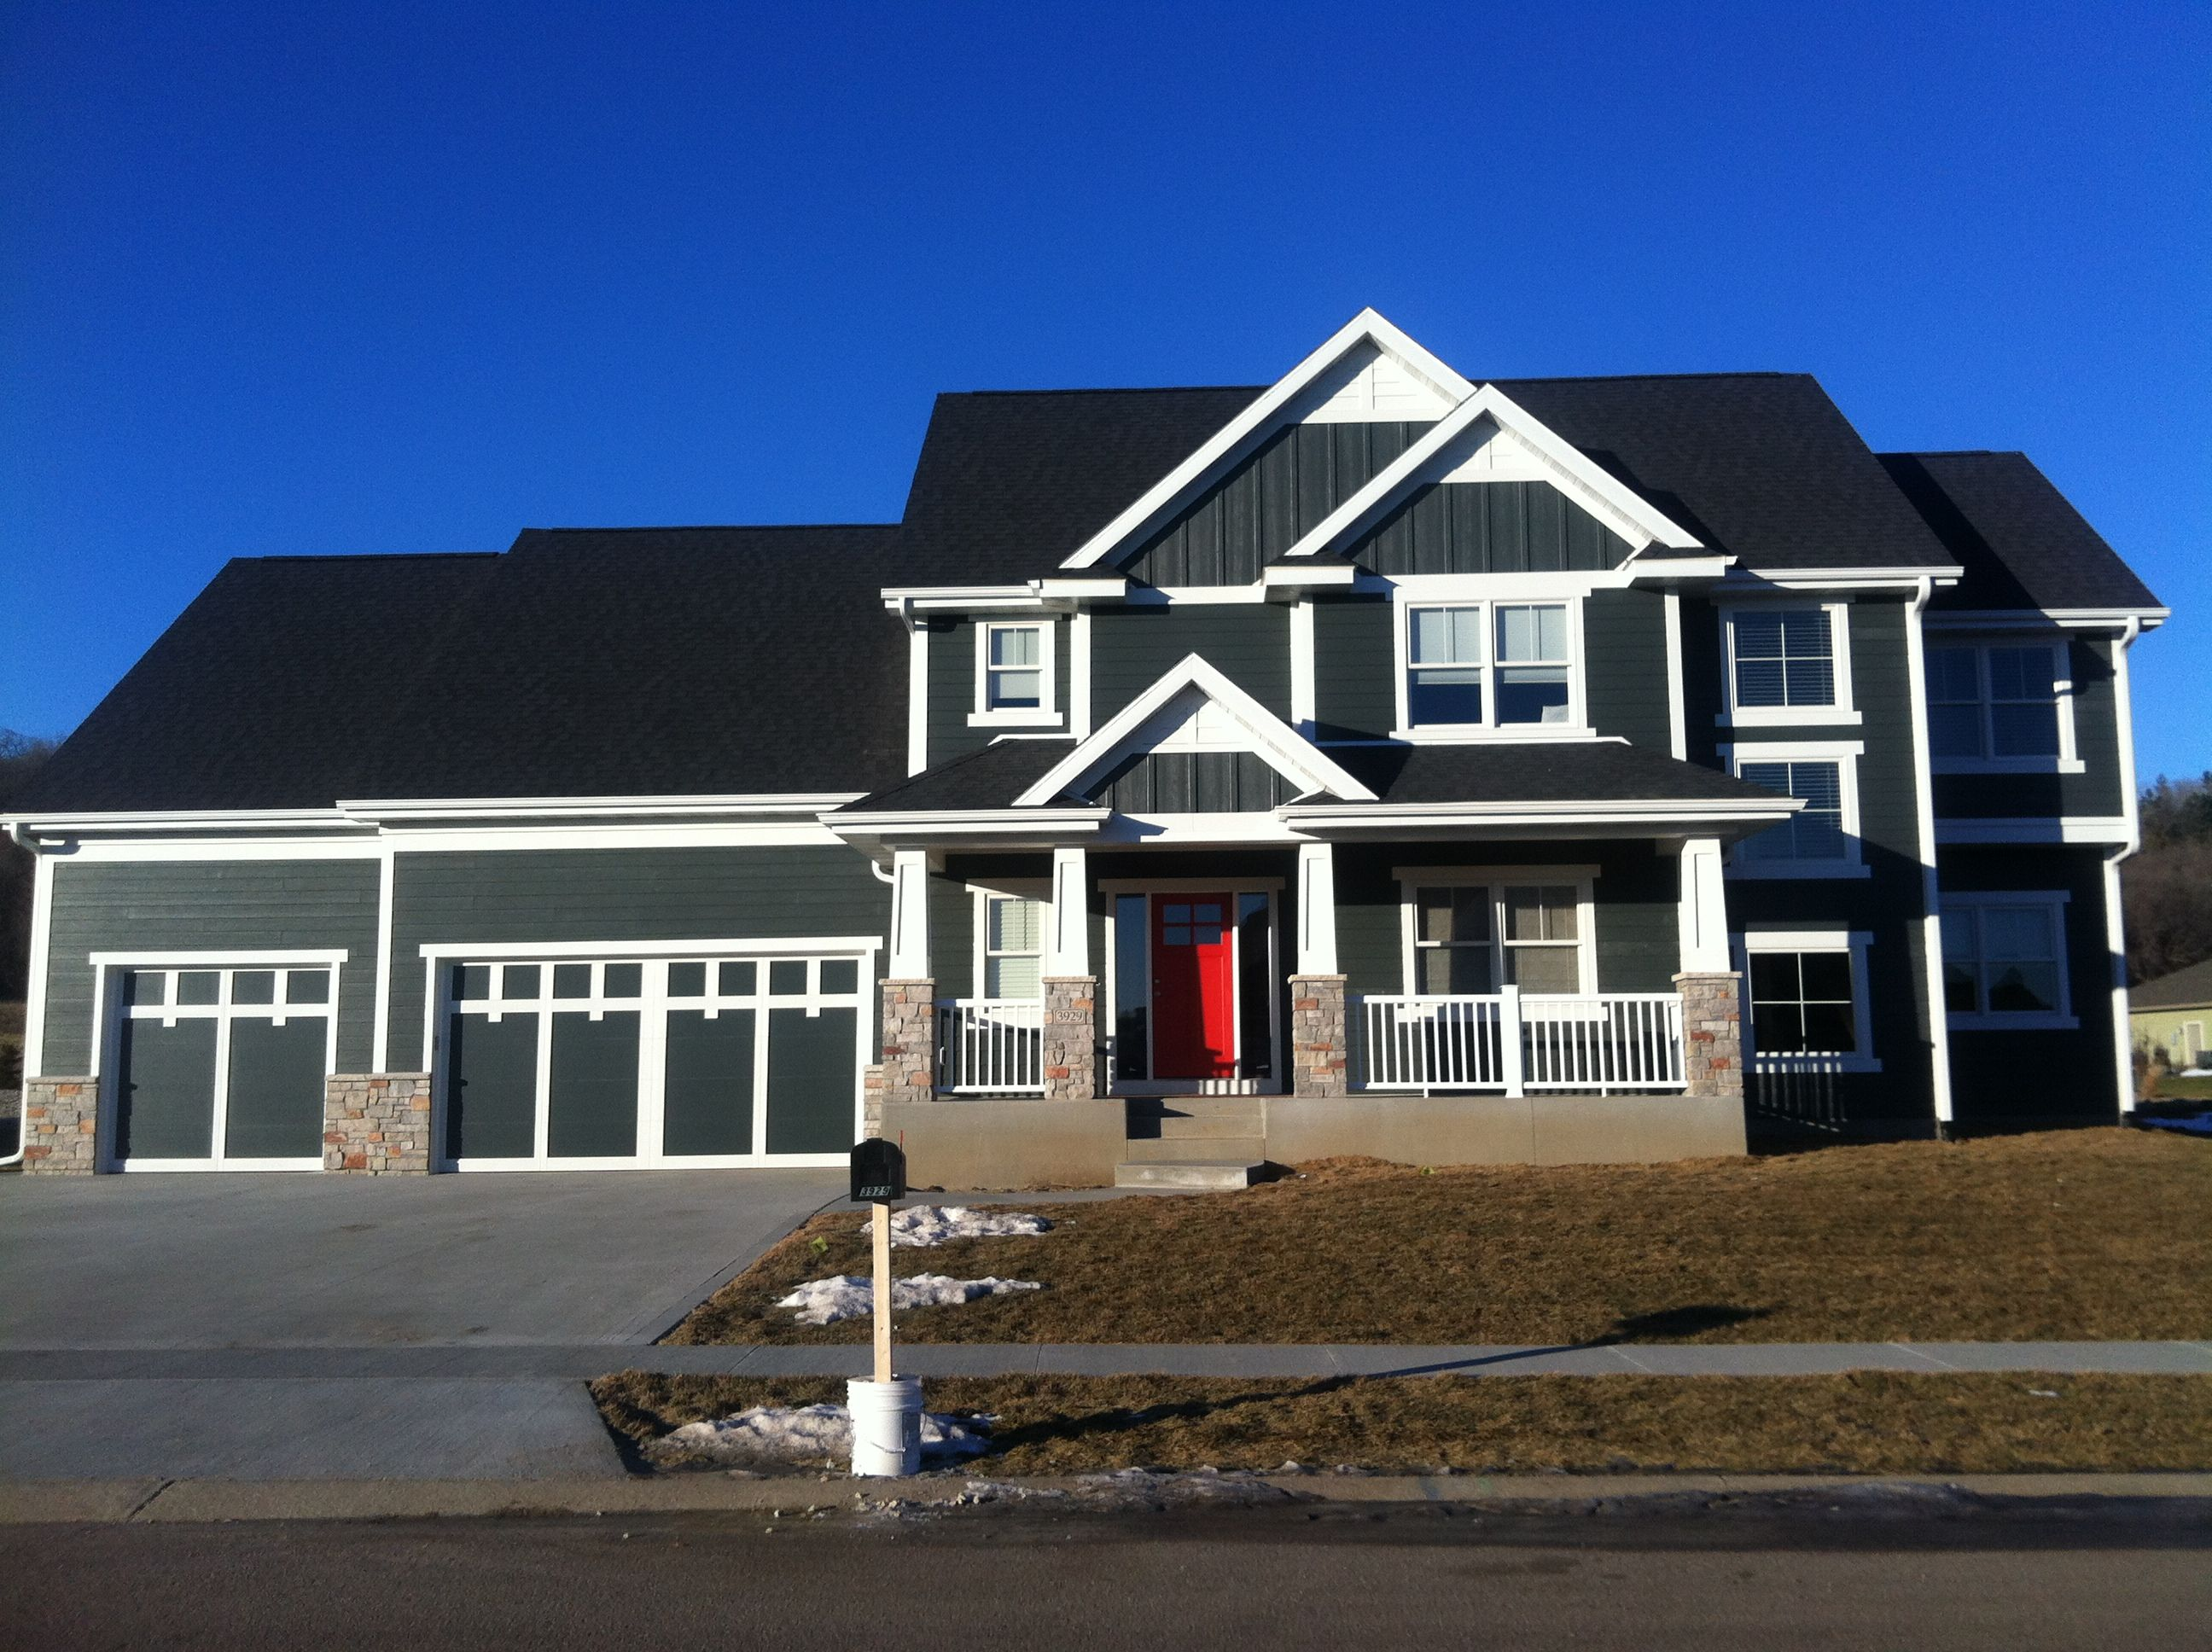 Slate Gray Hardi Plank With White Trim Someday Pinterest - Exterior hardie board